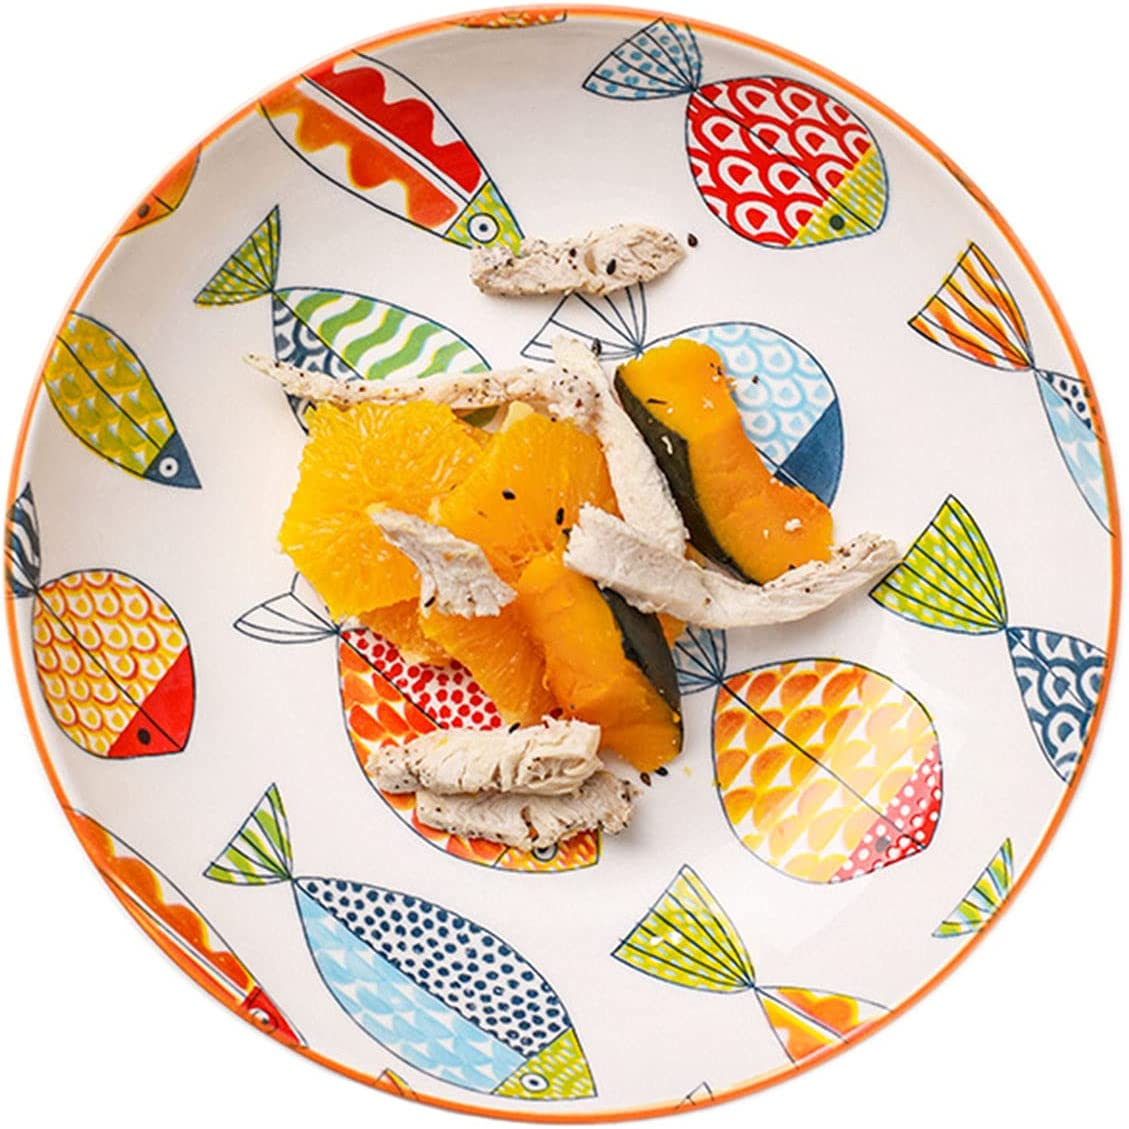 Fashion Sizikato Pumpkin Striped Porcelain Des Plate New product!! 7-Inch Snack